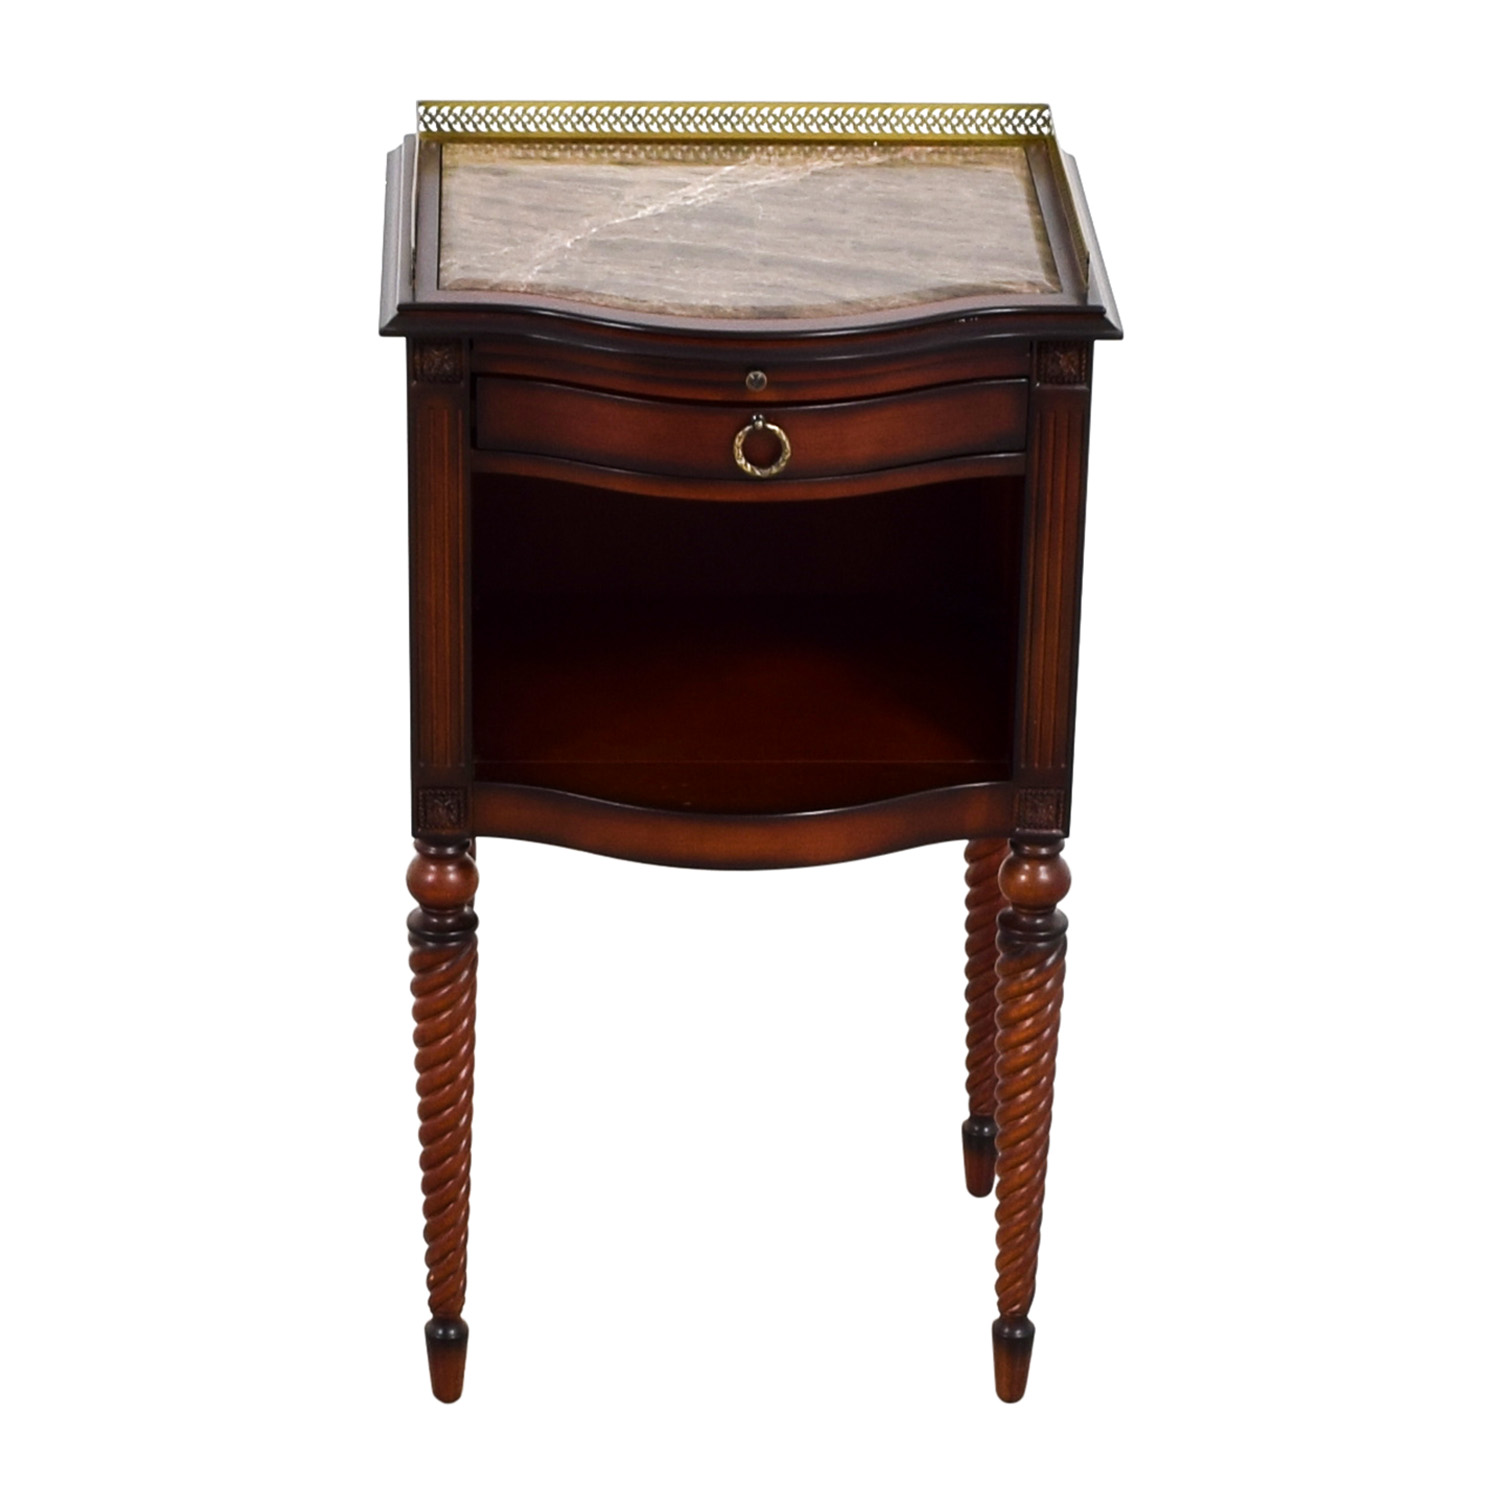 ... Bombay Bombay Marble Top With Gold Trim Wood Accent Table Second Hand  ...